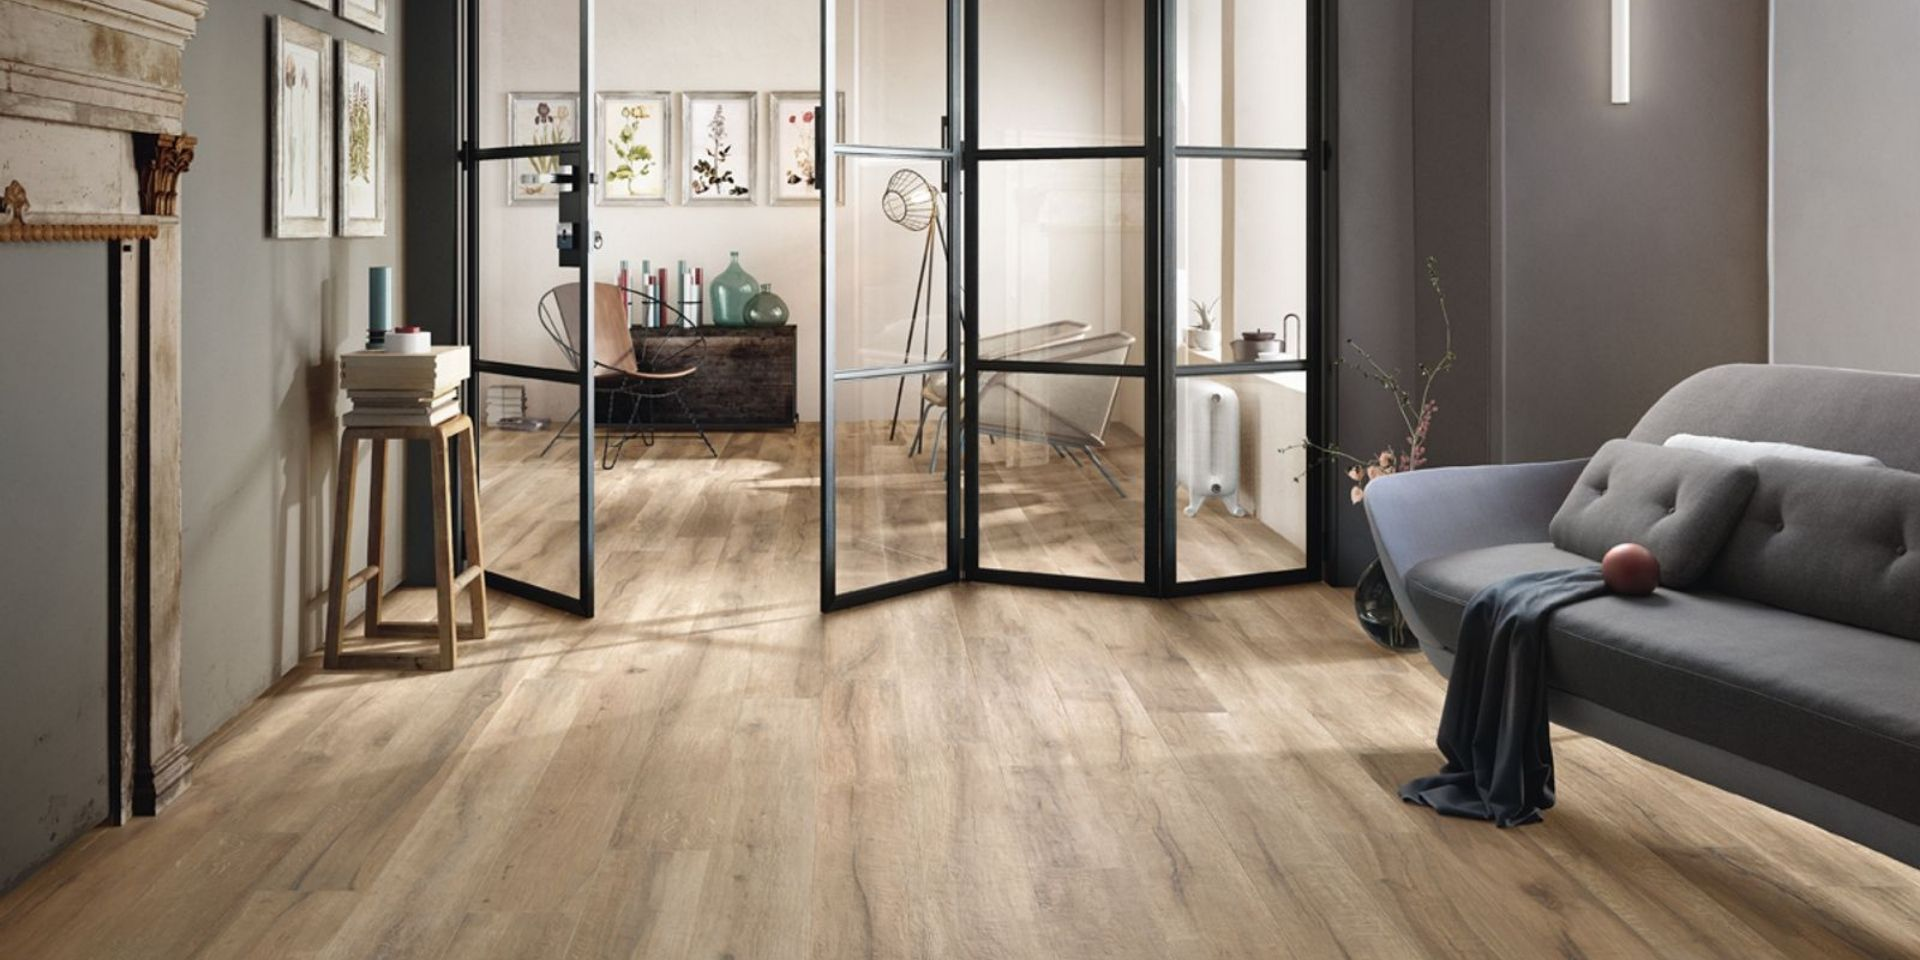 Wood Effect tiles from Malta's Largest showroom